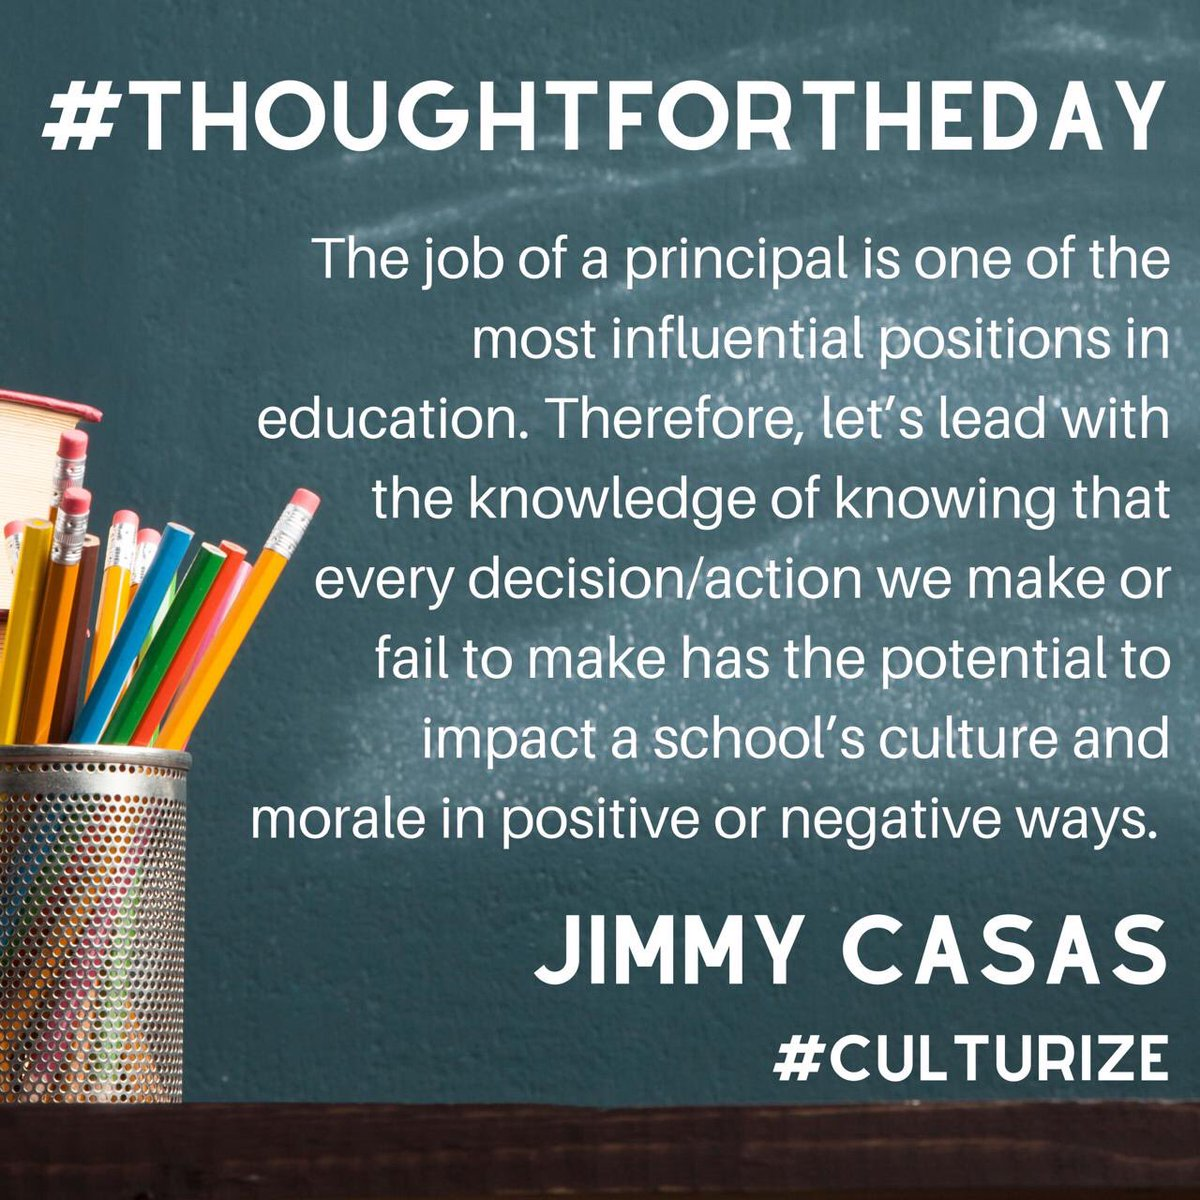 Powerful. @casas_jimmy #Culturize #JoyfulLeaders #ThoughtForTheDay